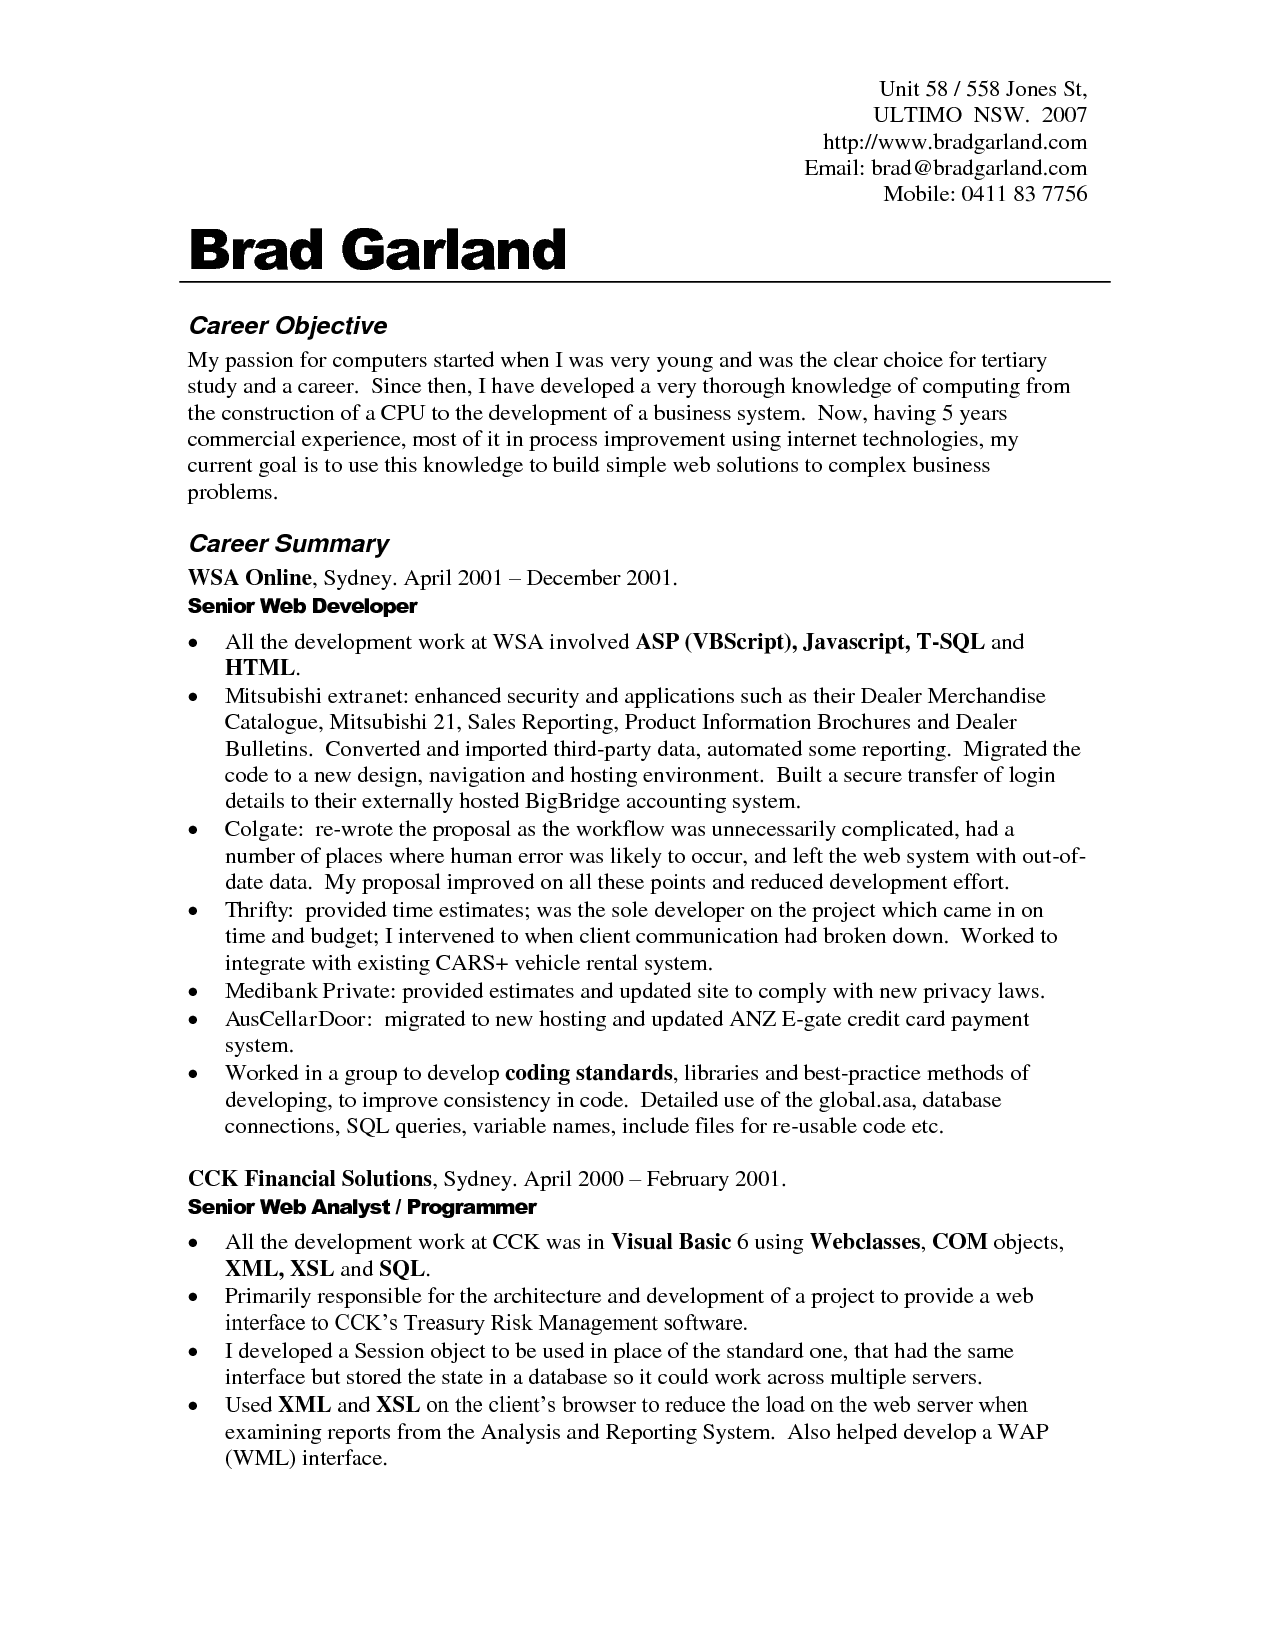 Career Objective For Resume And Career Objectives Statement Senior Web  Developer  Good Objectives For Resume